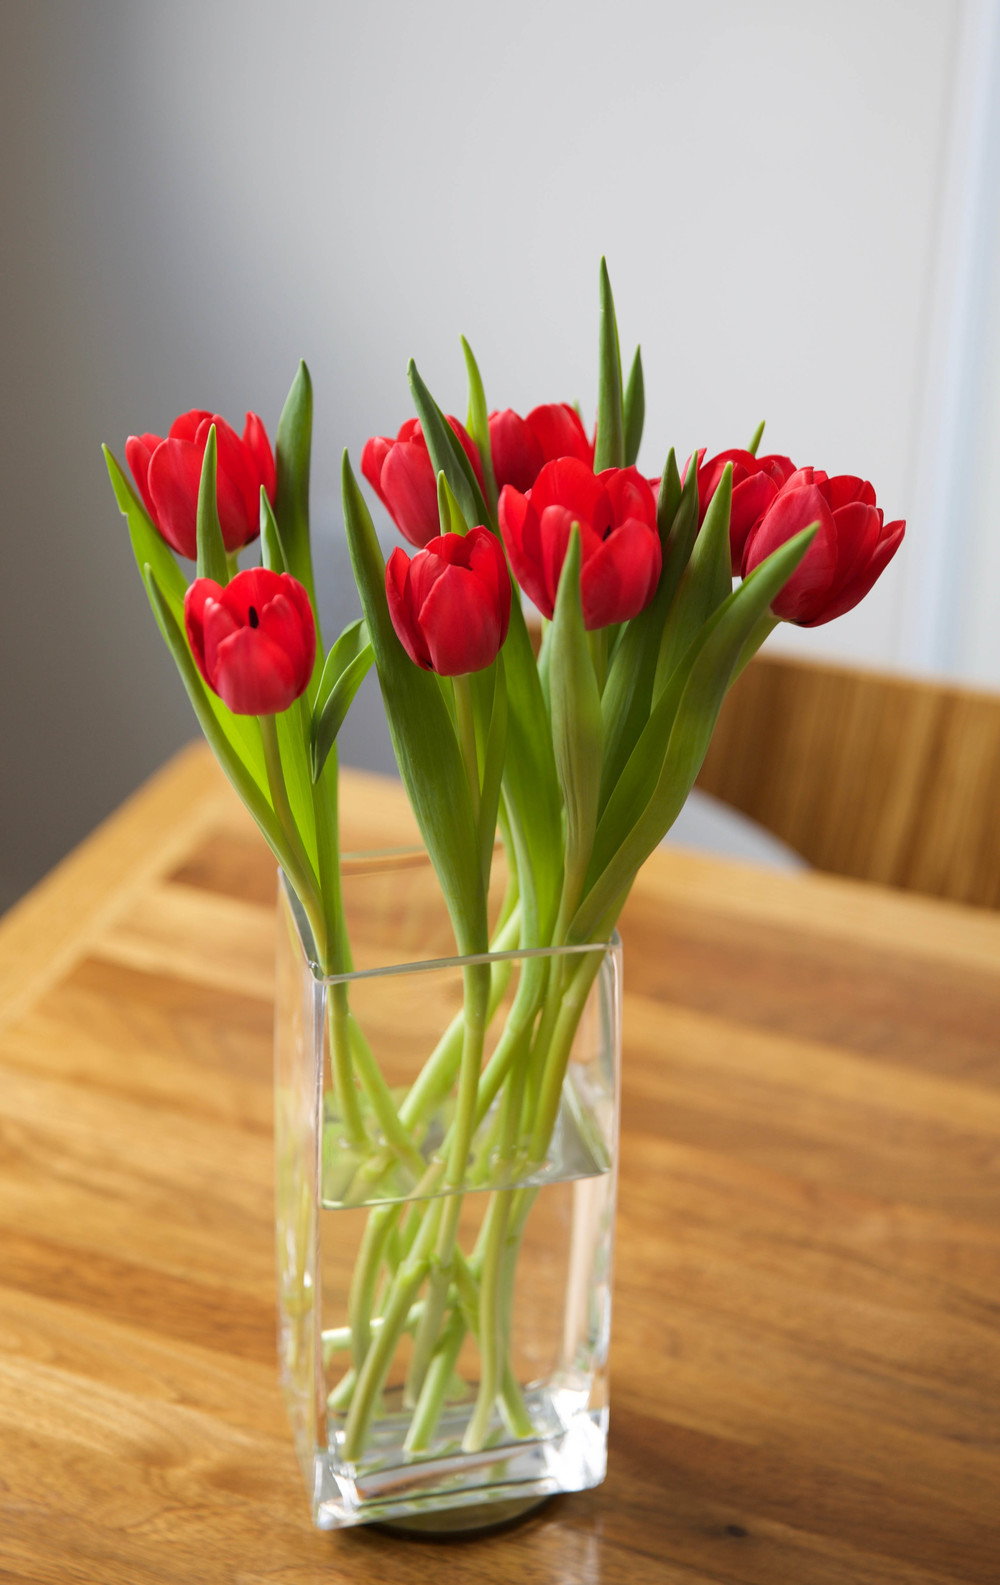 LaurenSchwaiger-Life-Style-Blog-Red-Tulips.jpg